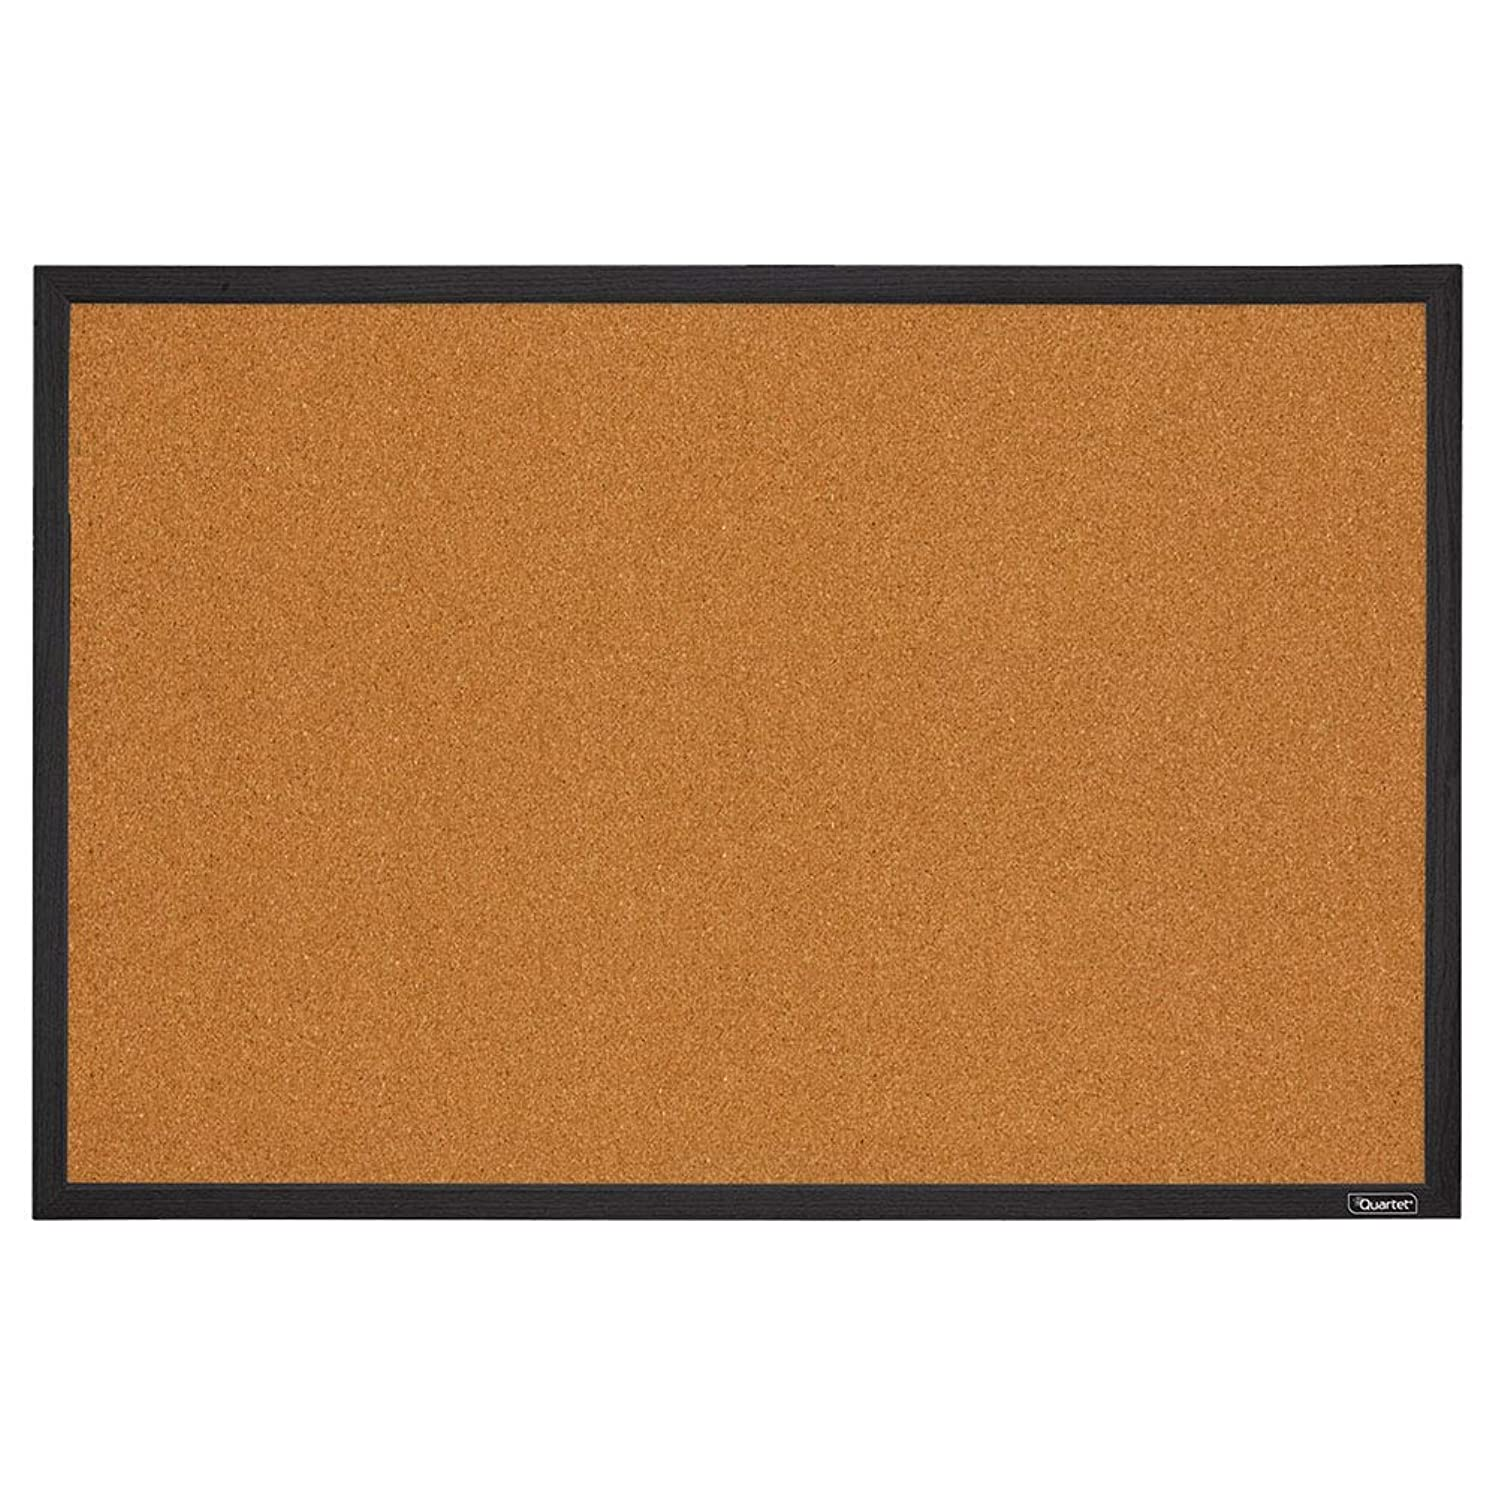 Quartet Corkboard, Framed Bulletin Board, 2' x 3' Cork Board, Black Frame (MWDB2436-BK)